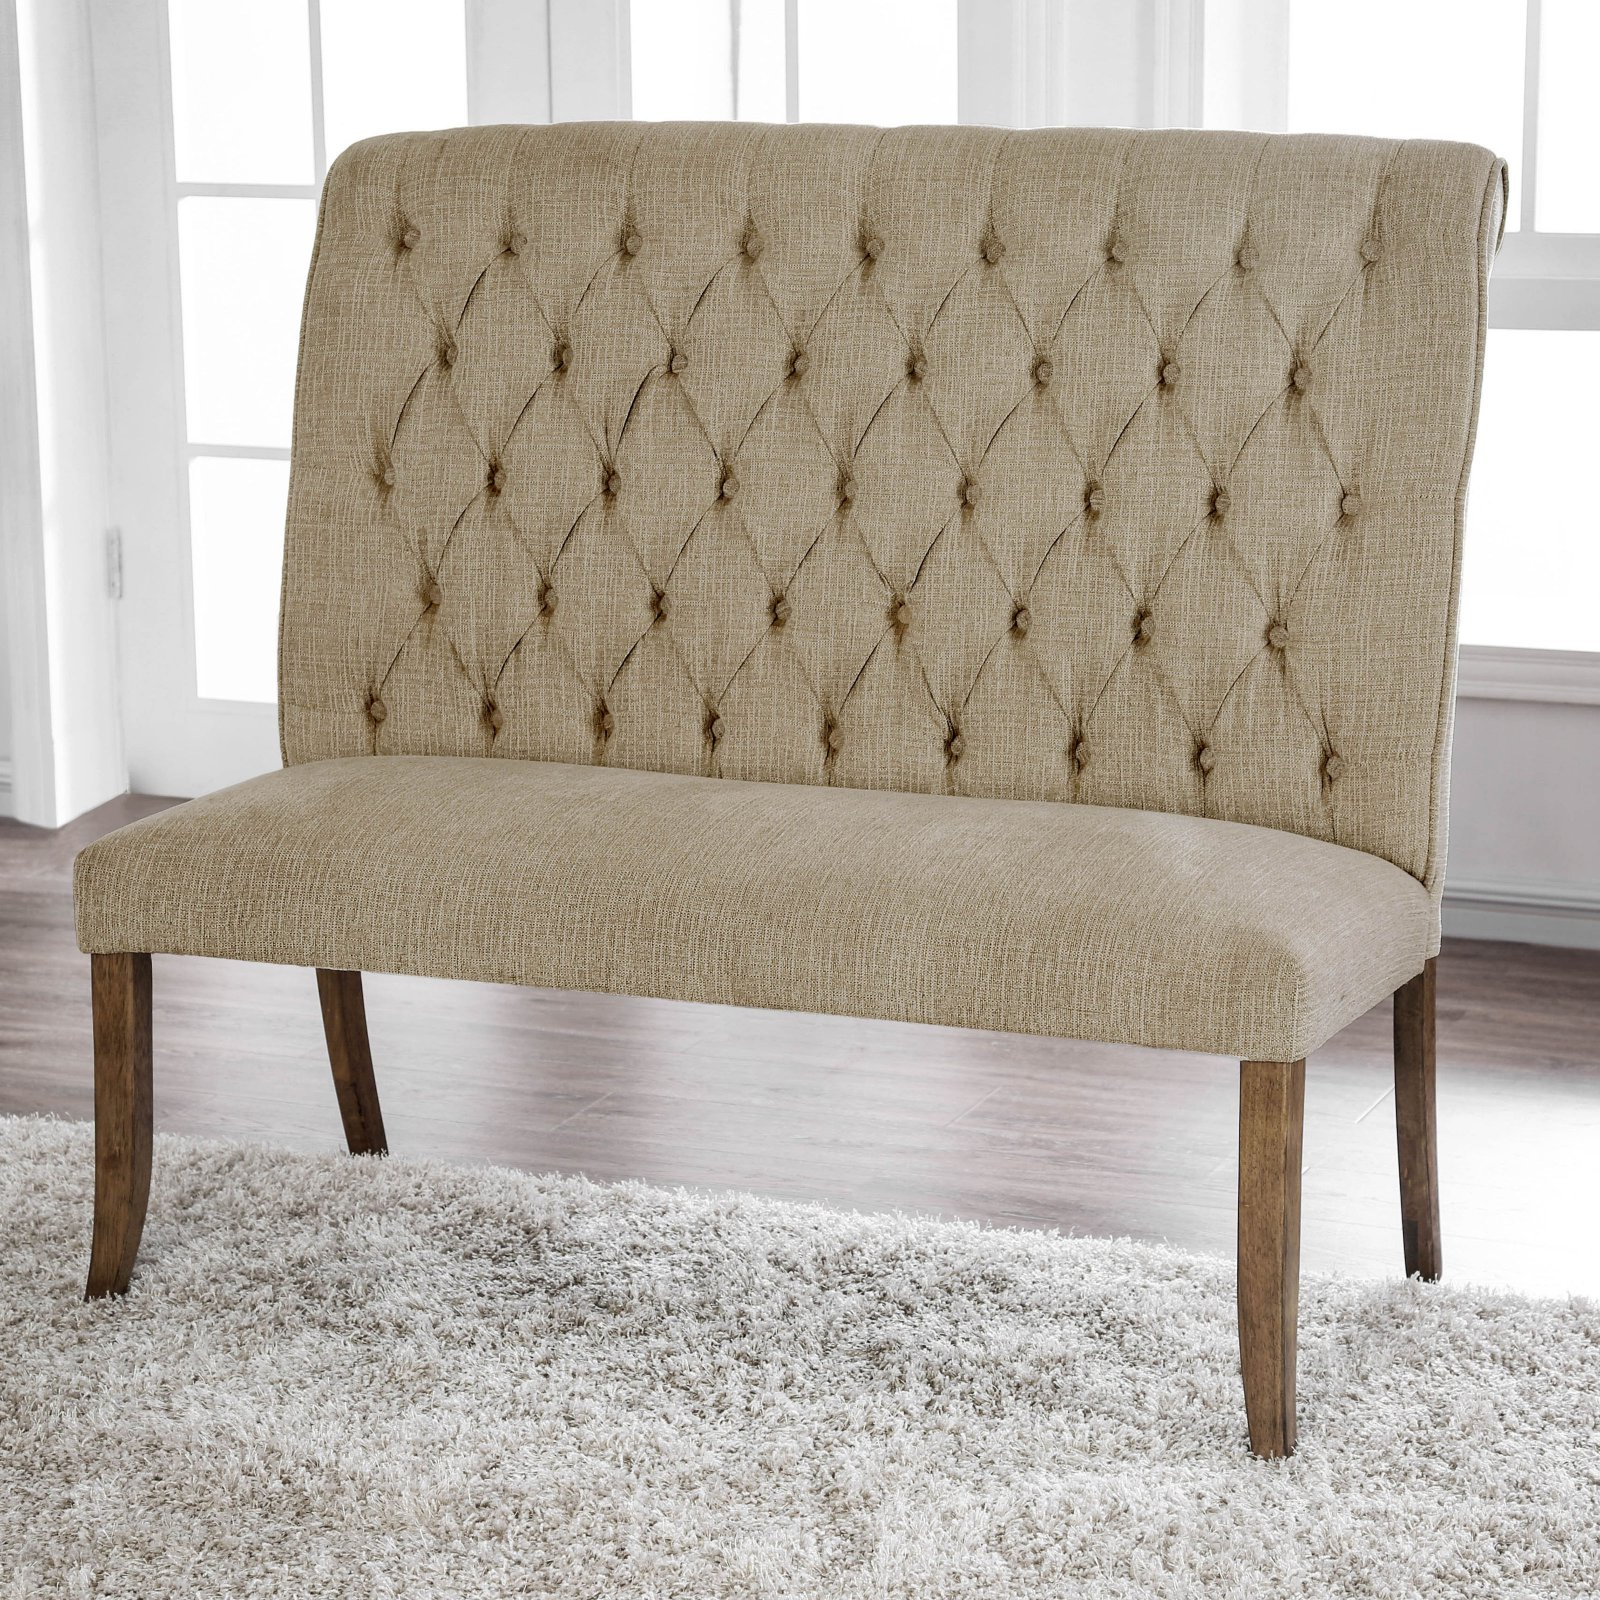 Furniture of America Harrington Scroll Back Button Tufted Dining Bench